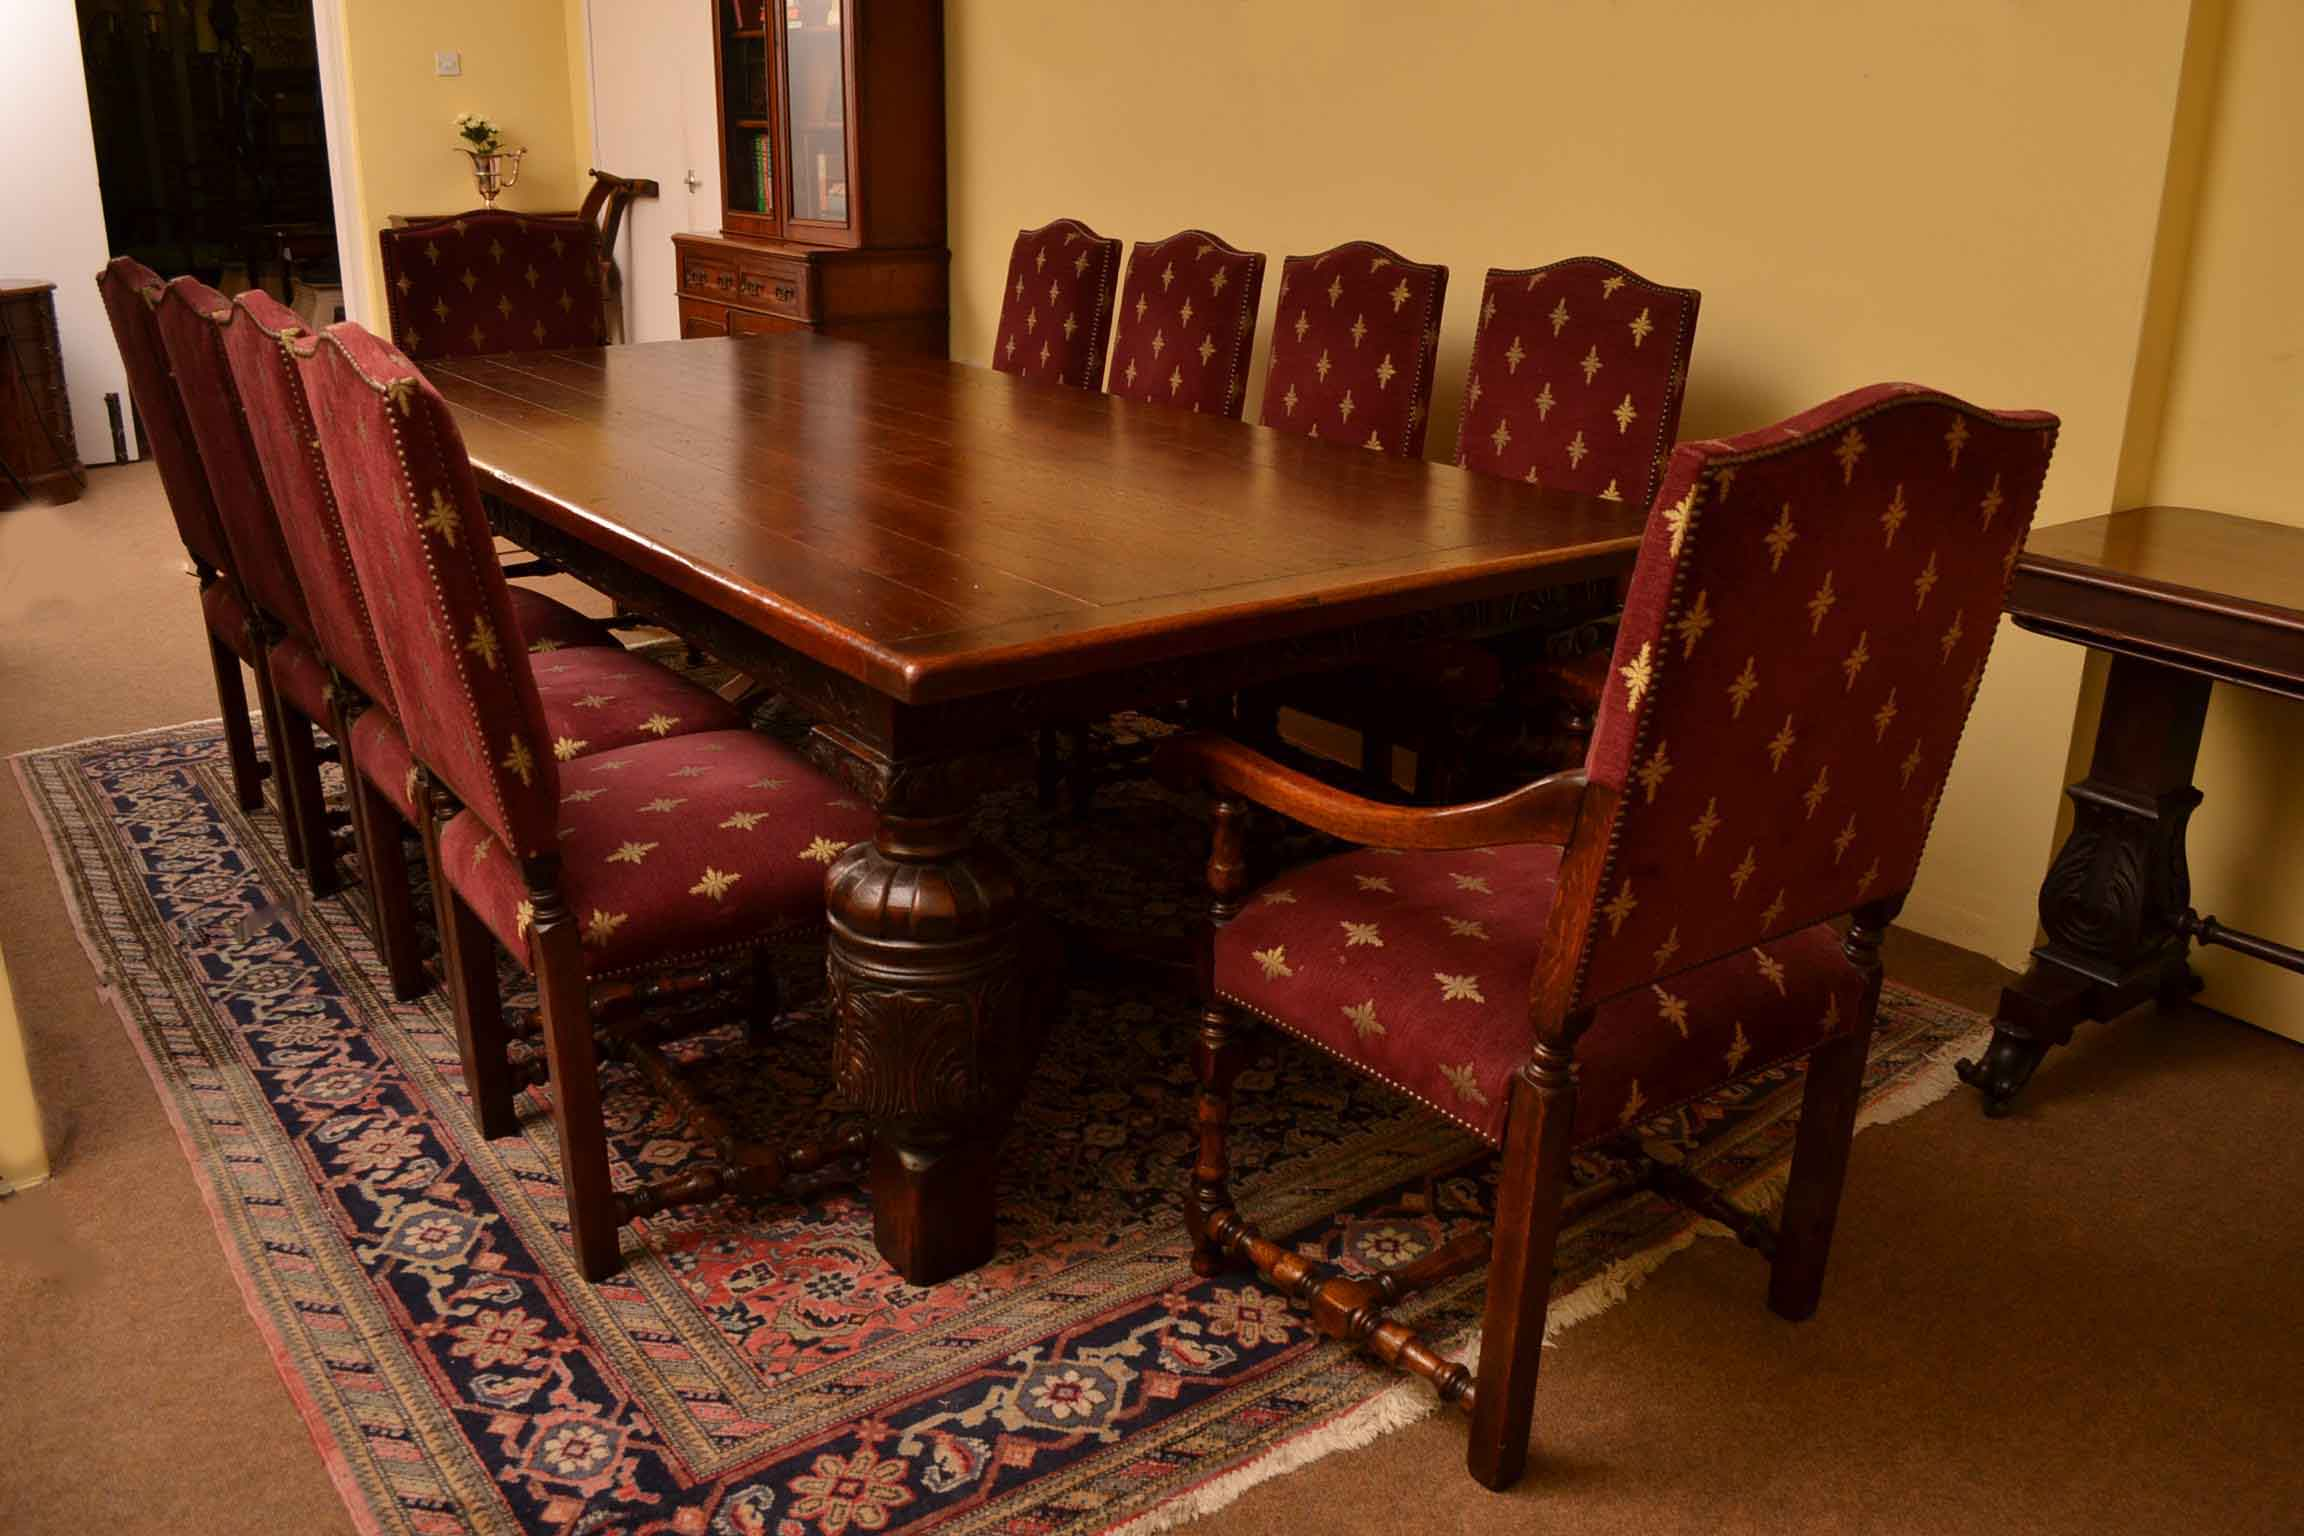 oak dining room suites   Regent Antiques - Dining tables and chairs - Table and ...